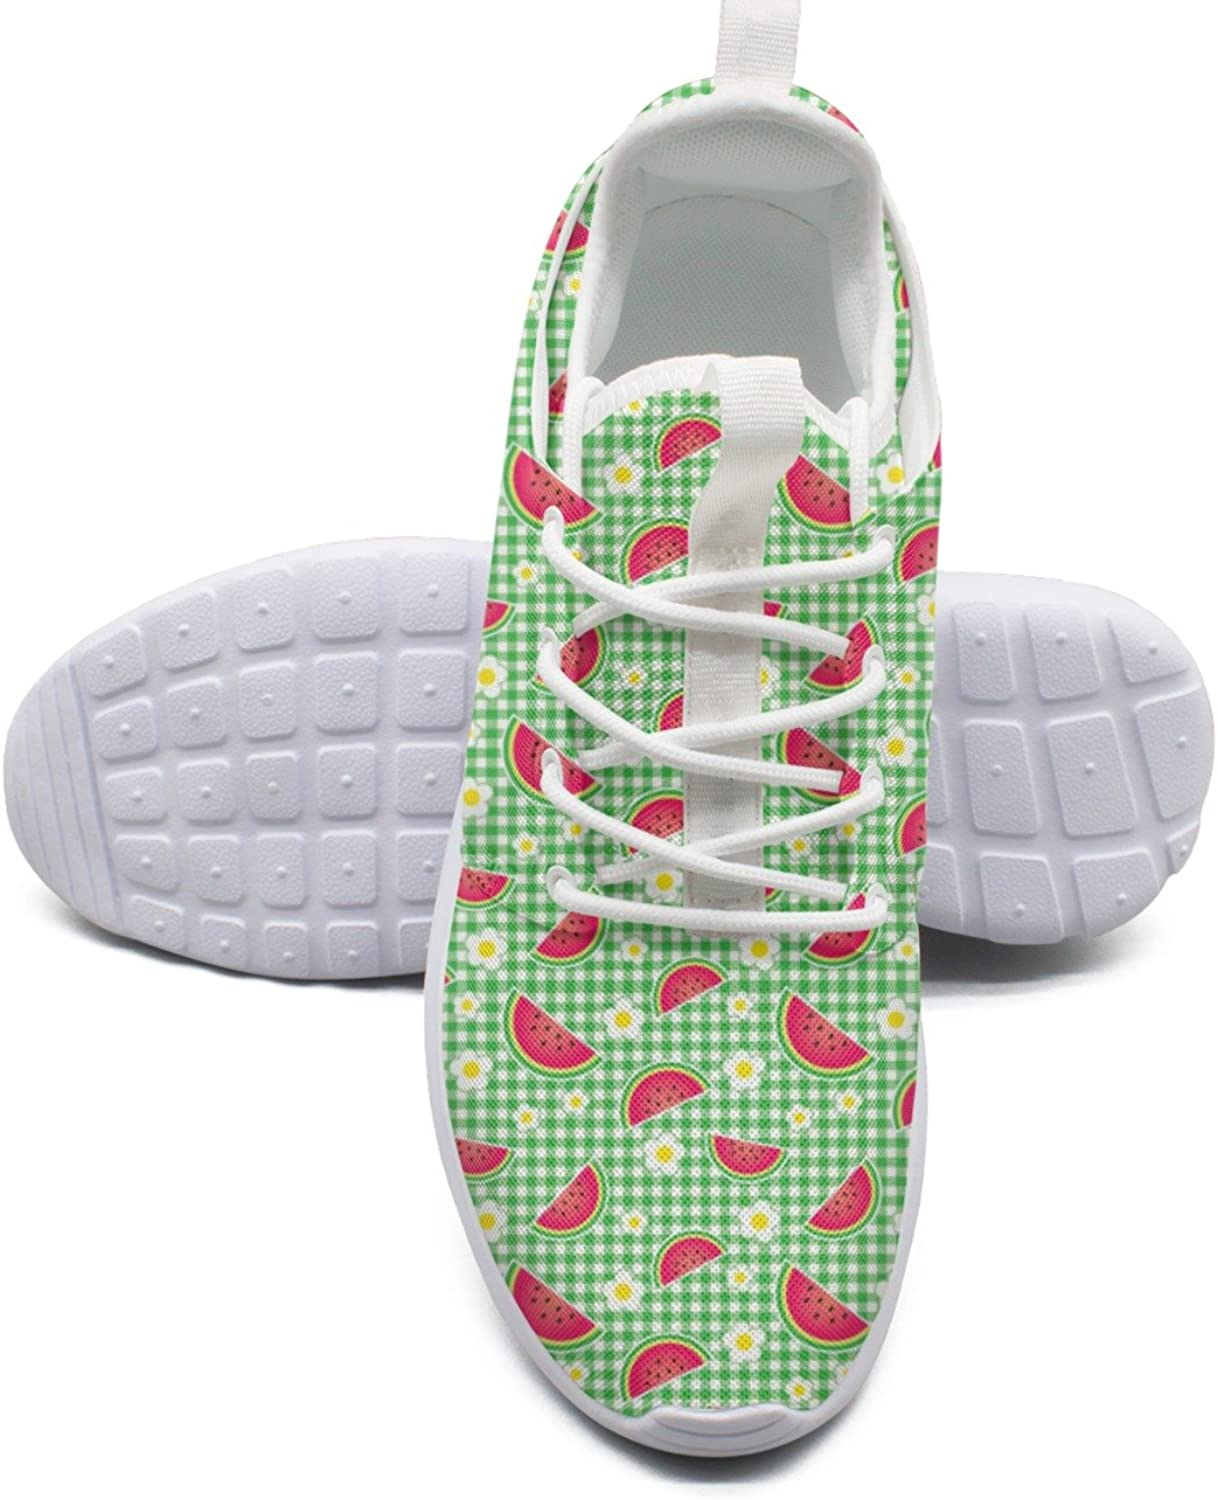 Giant Sour Watermelon Womans Printing Running shoes Jogger Gift